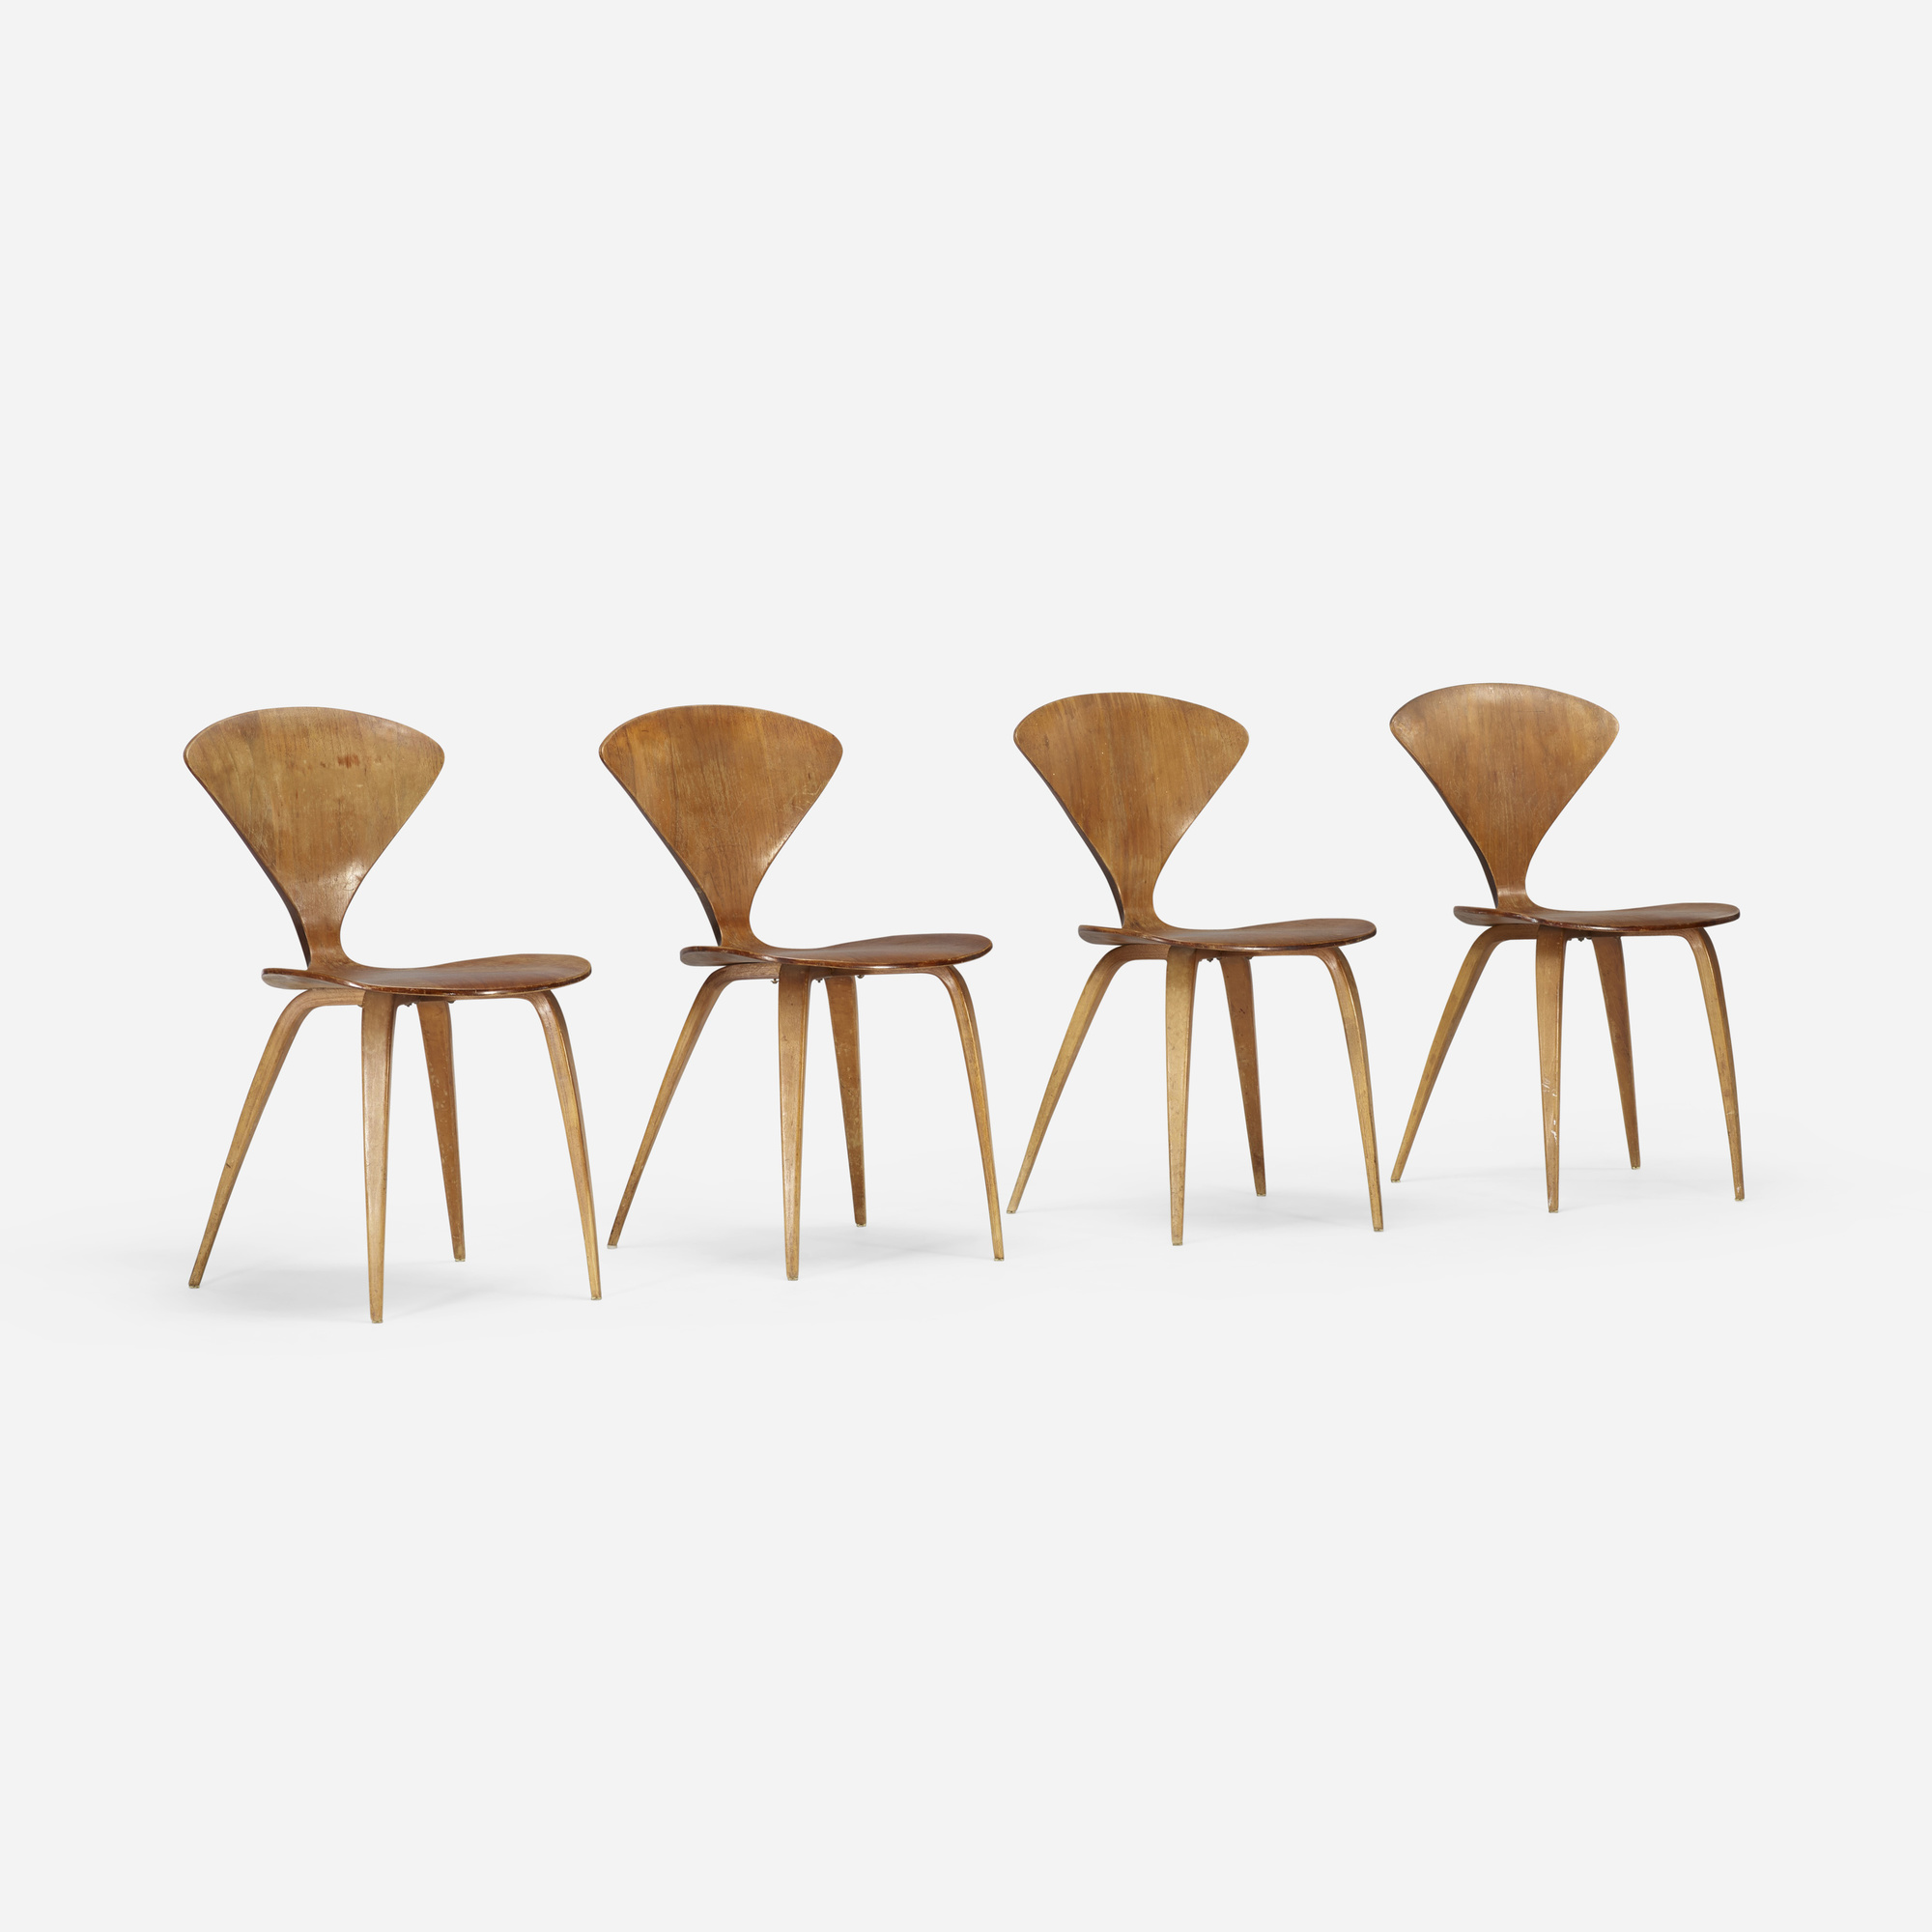 202: Norman Cherner / dining chairs, set of four (1 of 4)